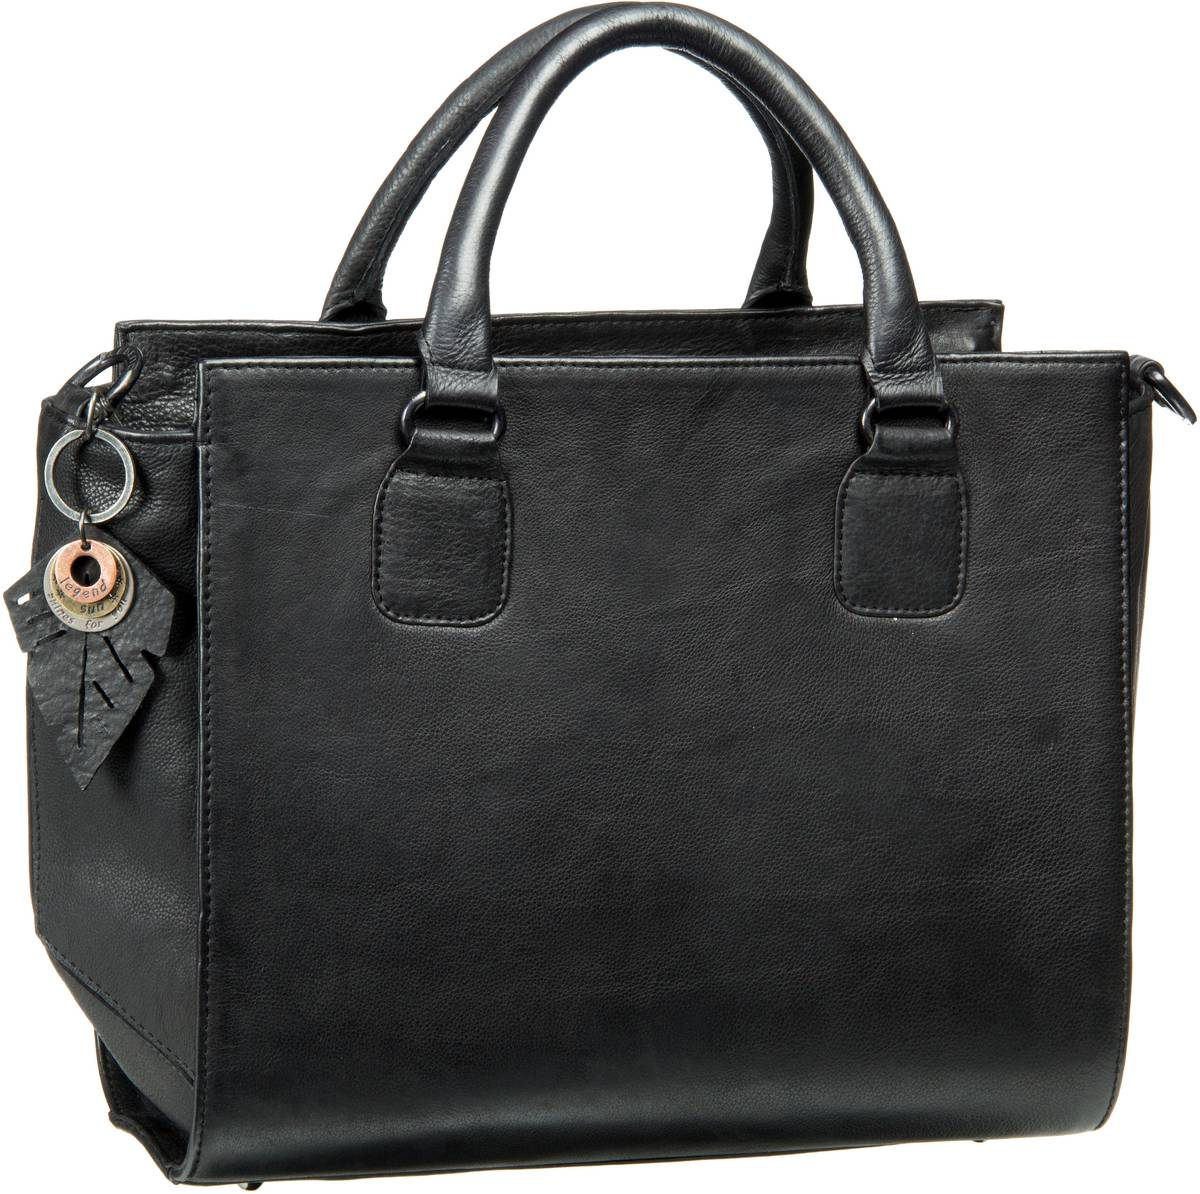 Legend Vasto Black - Handtasche